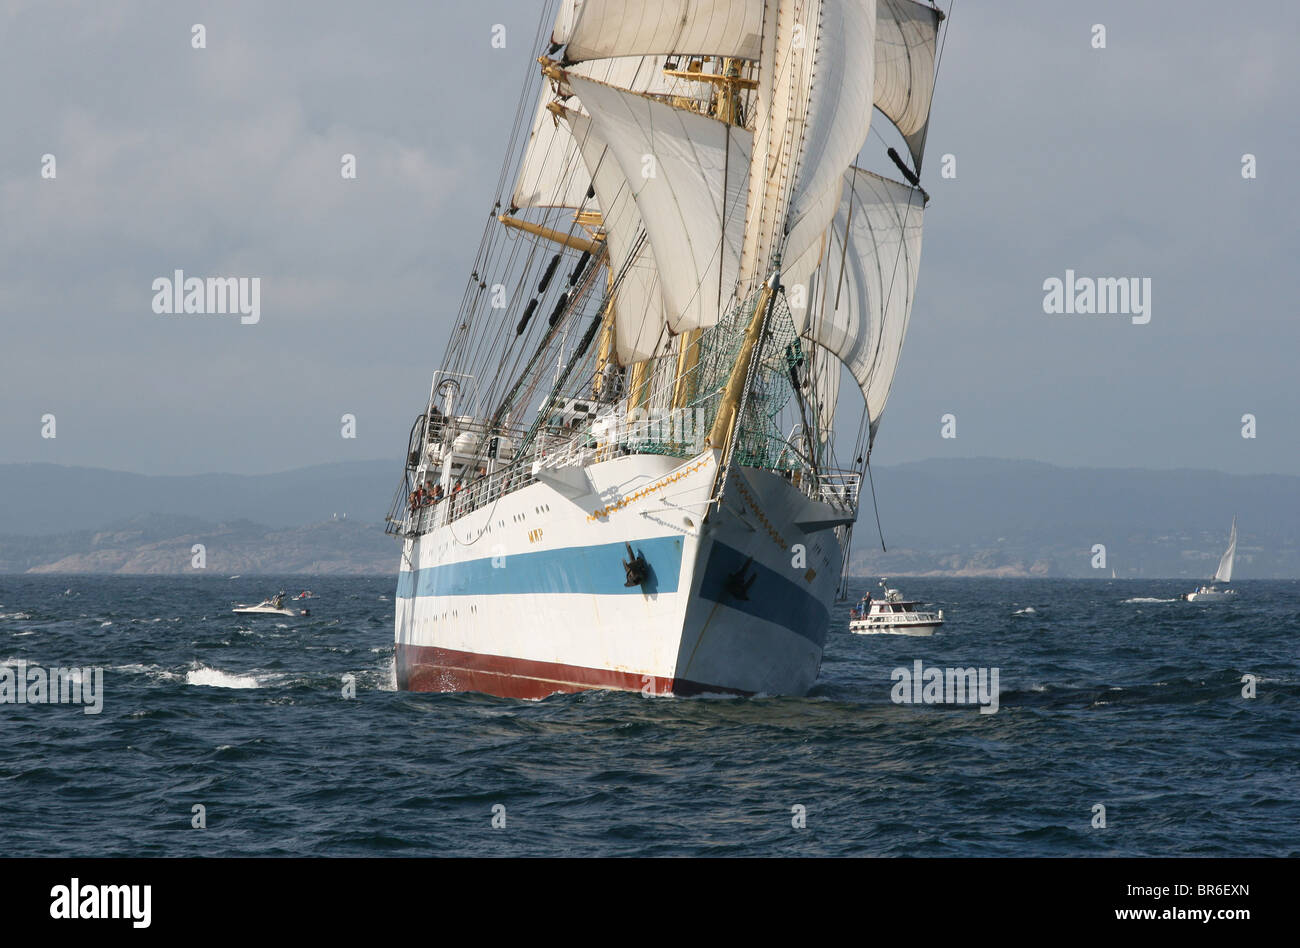 Mir, The Tall Ships Races 2010, Kristiansand - Stock Image